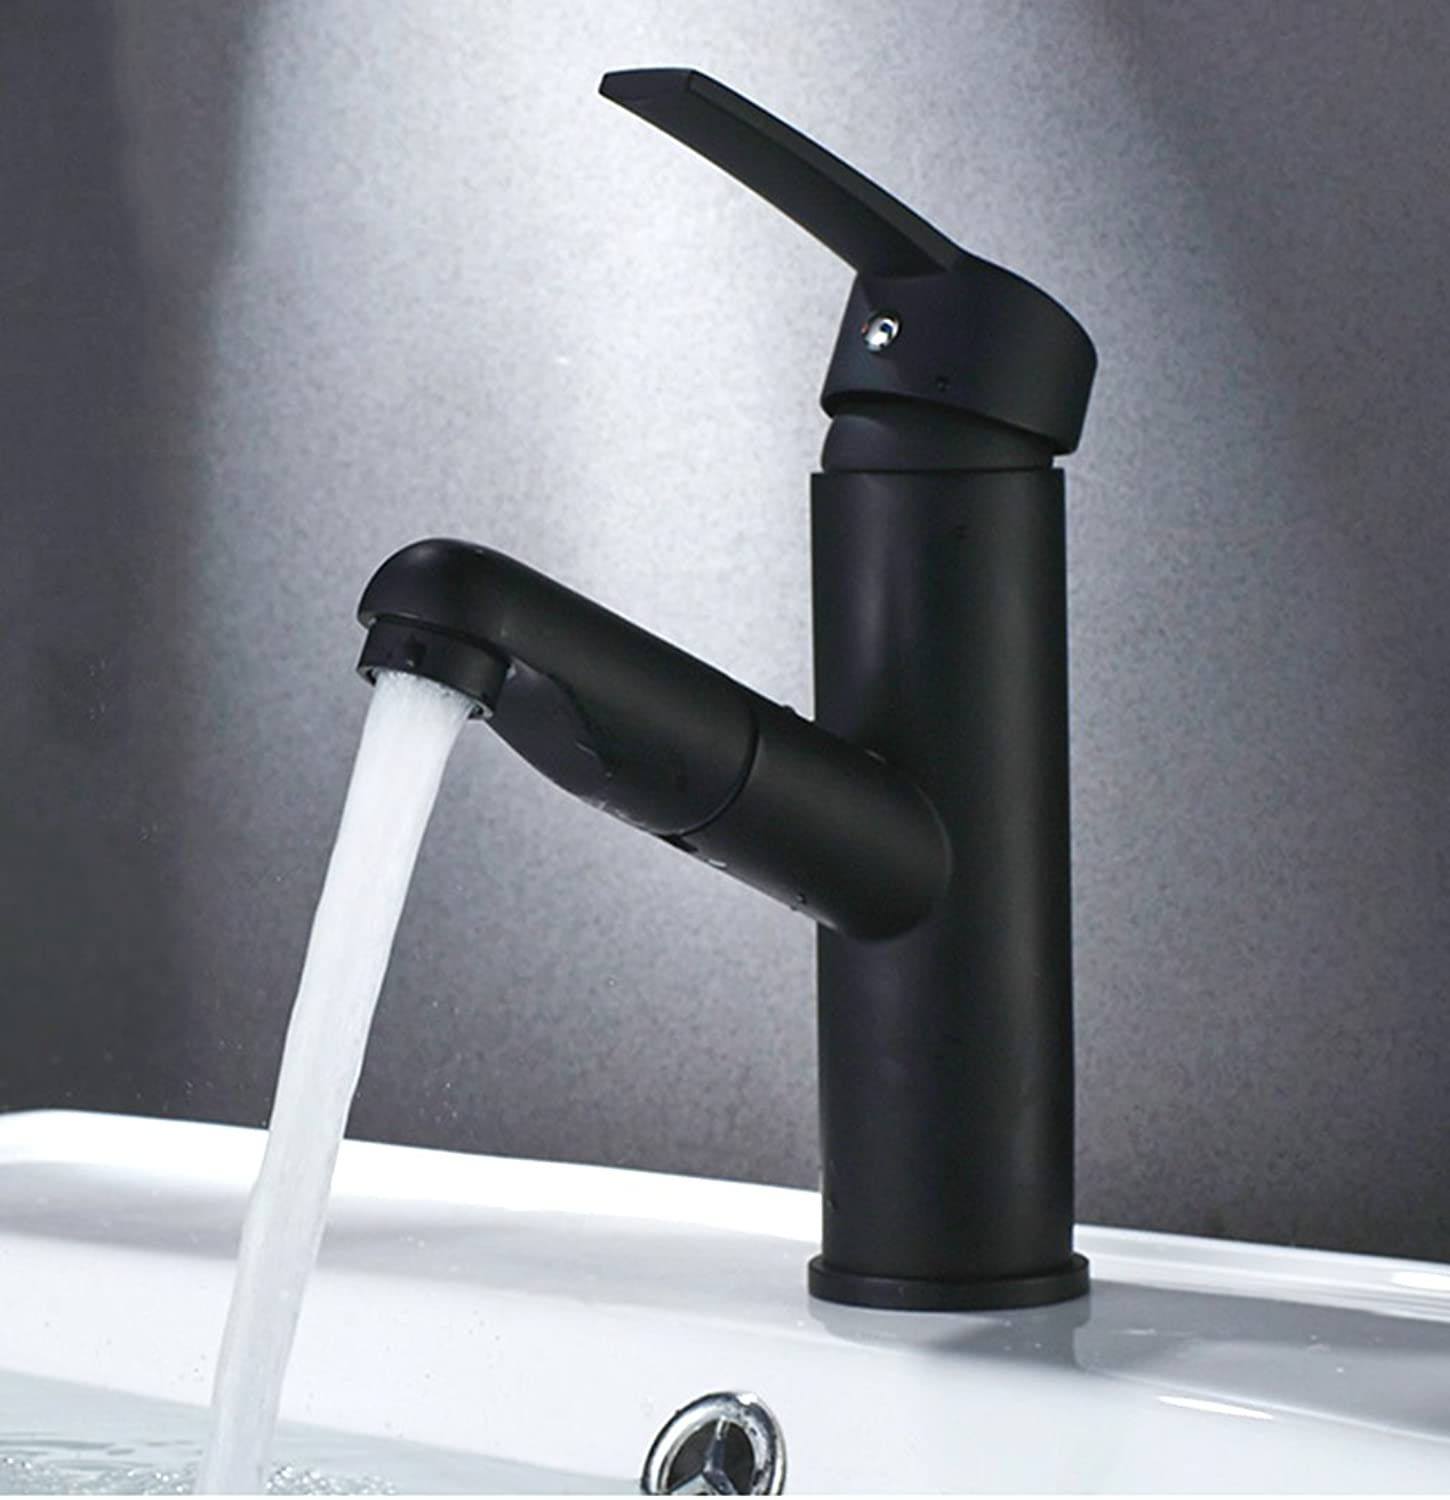 QJIAXING Bathroom Sink Taps Pull-Type Matte Black Copper Single Hole Hot And Cold Water Mixer Basin Faucets Short